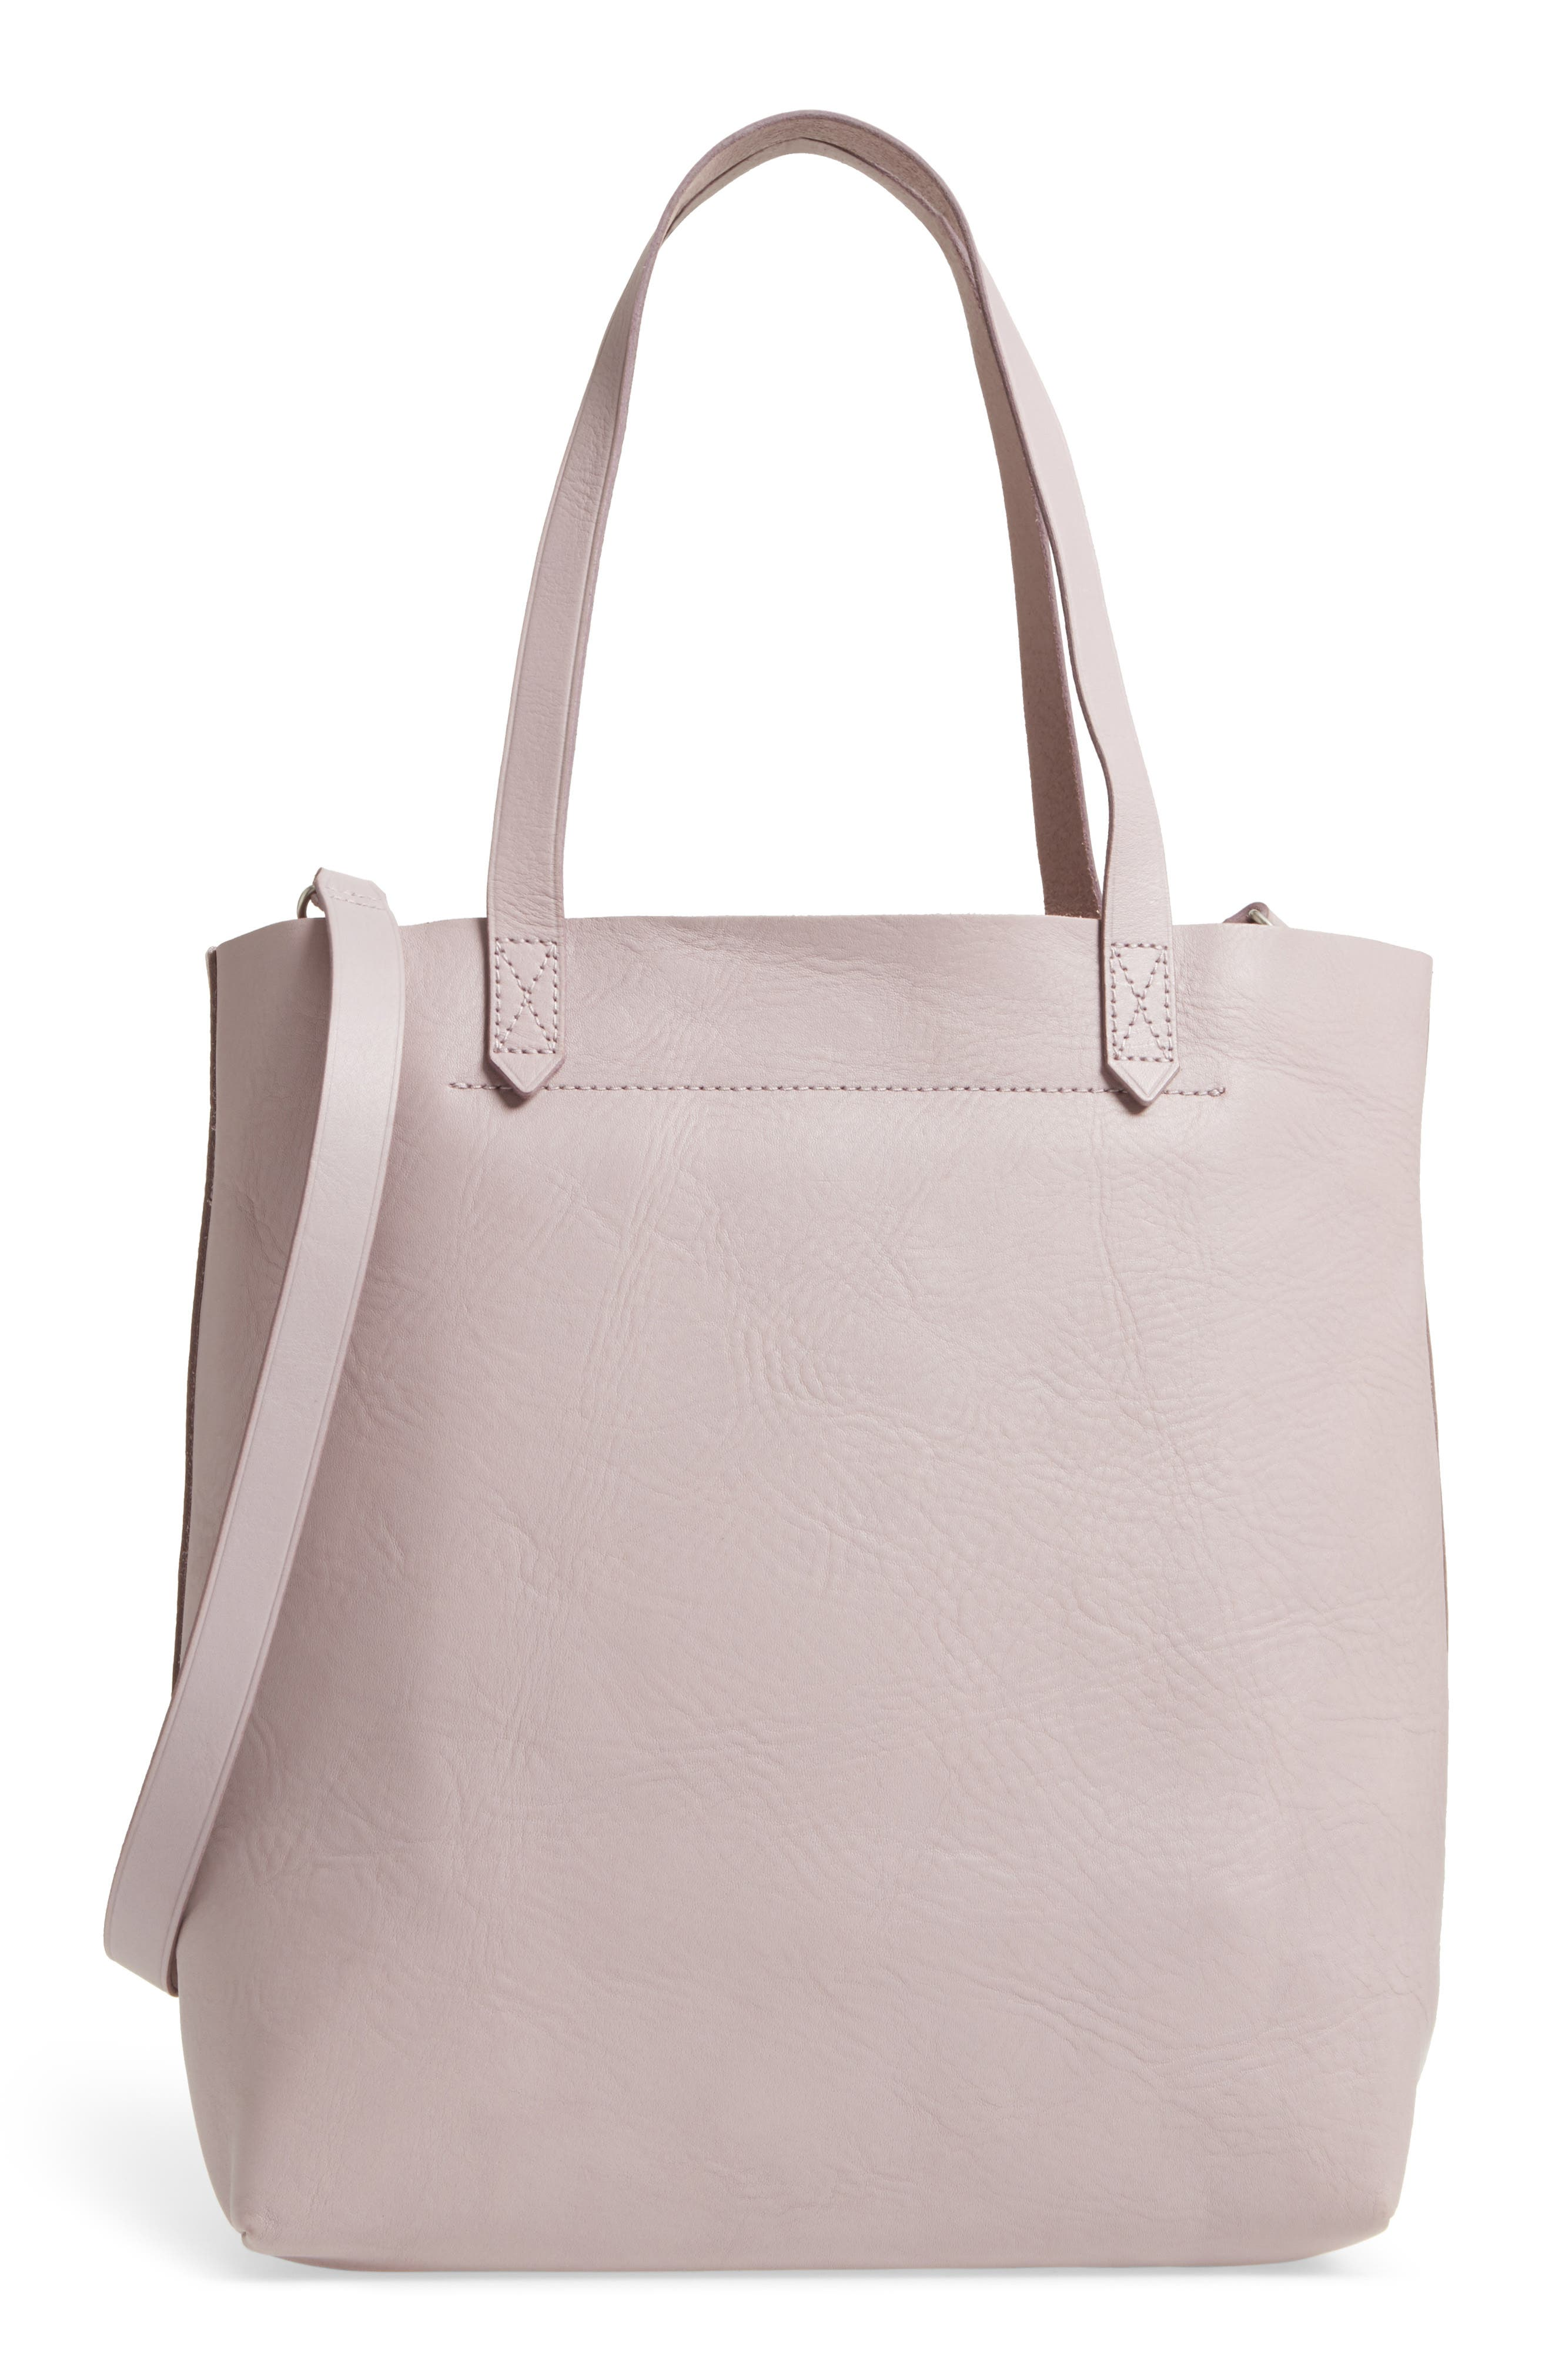 Medium Leather Transport Tote,                             Main thumbnail 6, color,